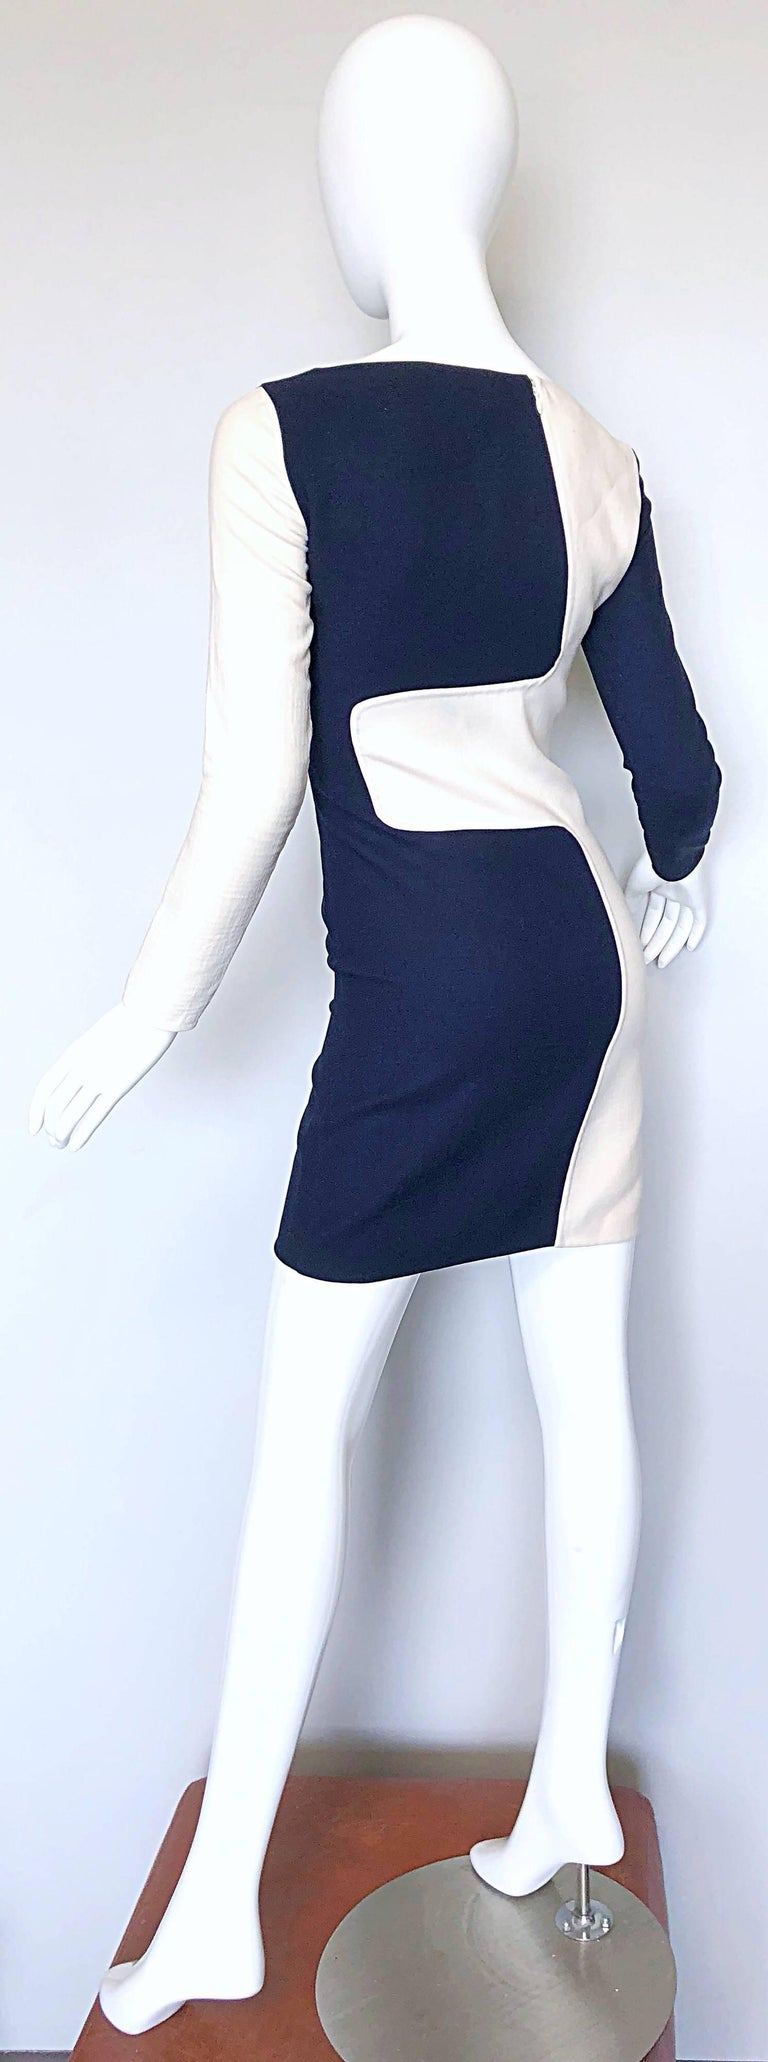 Michael Kors Collection Spring 2013 Size 0 / 2 Navy Blue and White Puzzle Dress For Sale 3